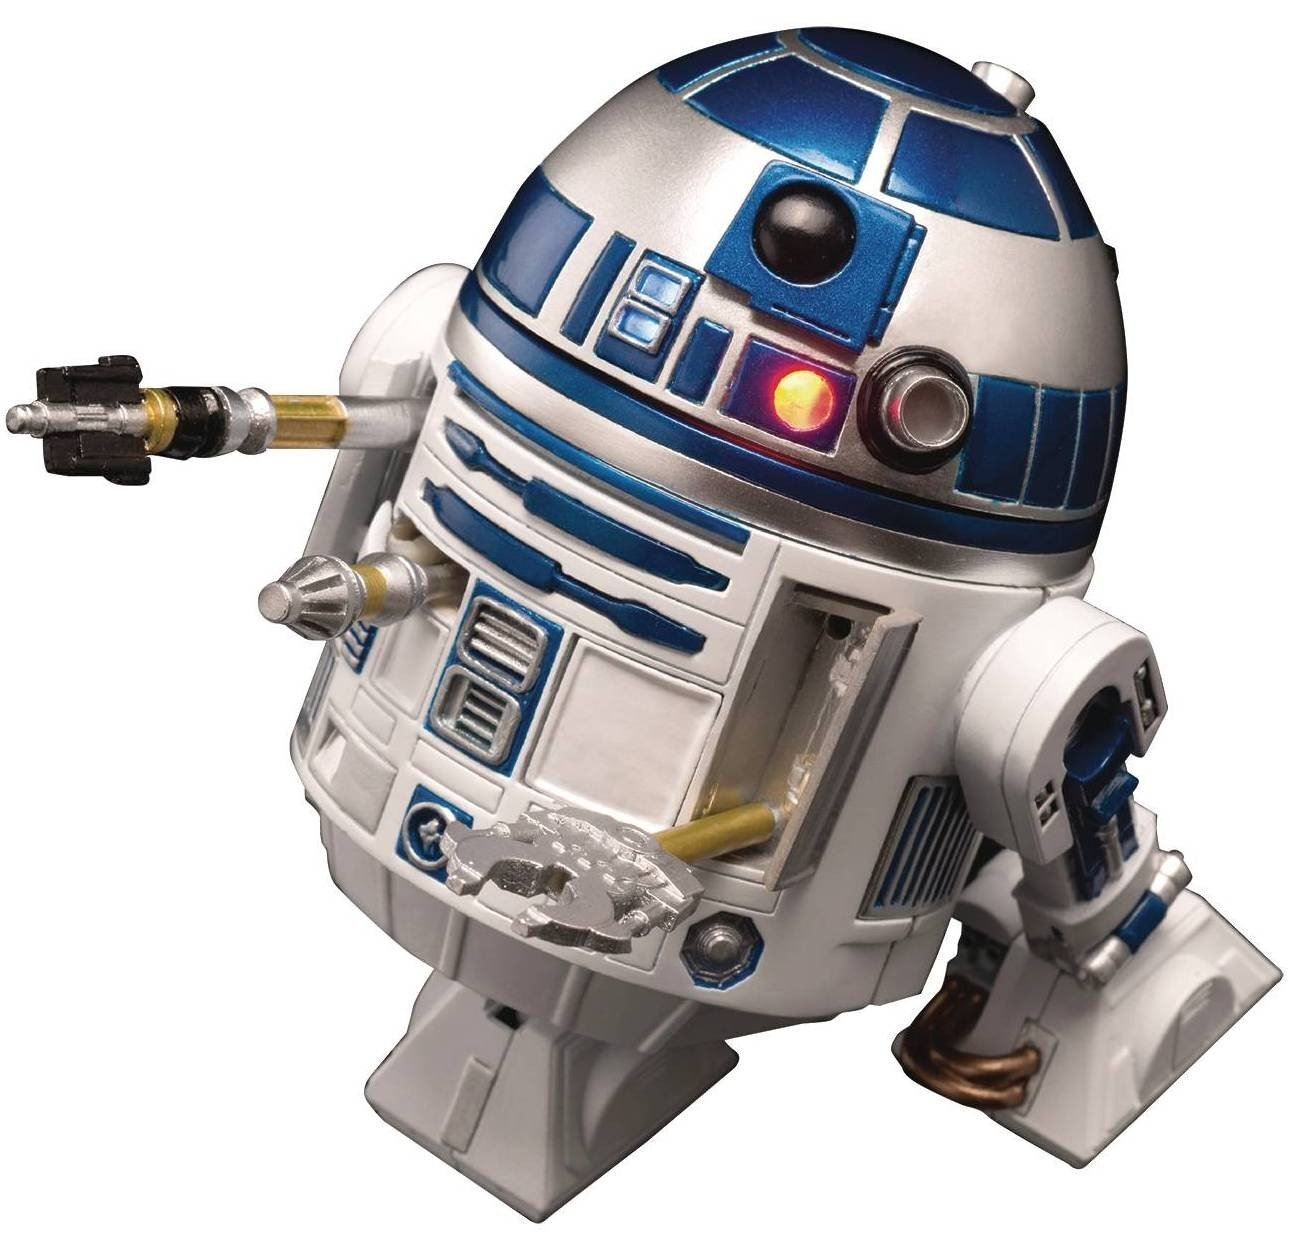 STAR STAR STAR WARS EP5 EAA-009 R2-D2 PREVIEWS ECLUSIVE ACTION FIGURE 1ada21